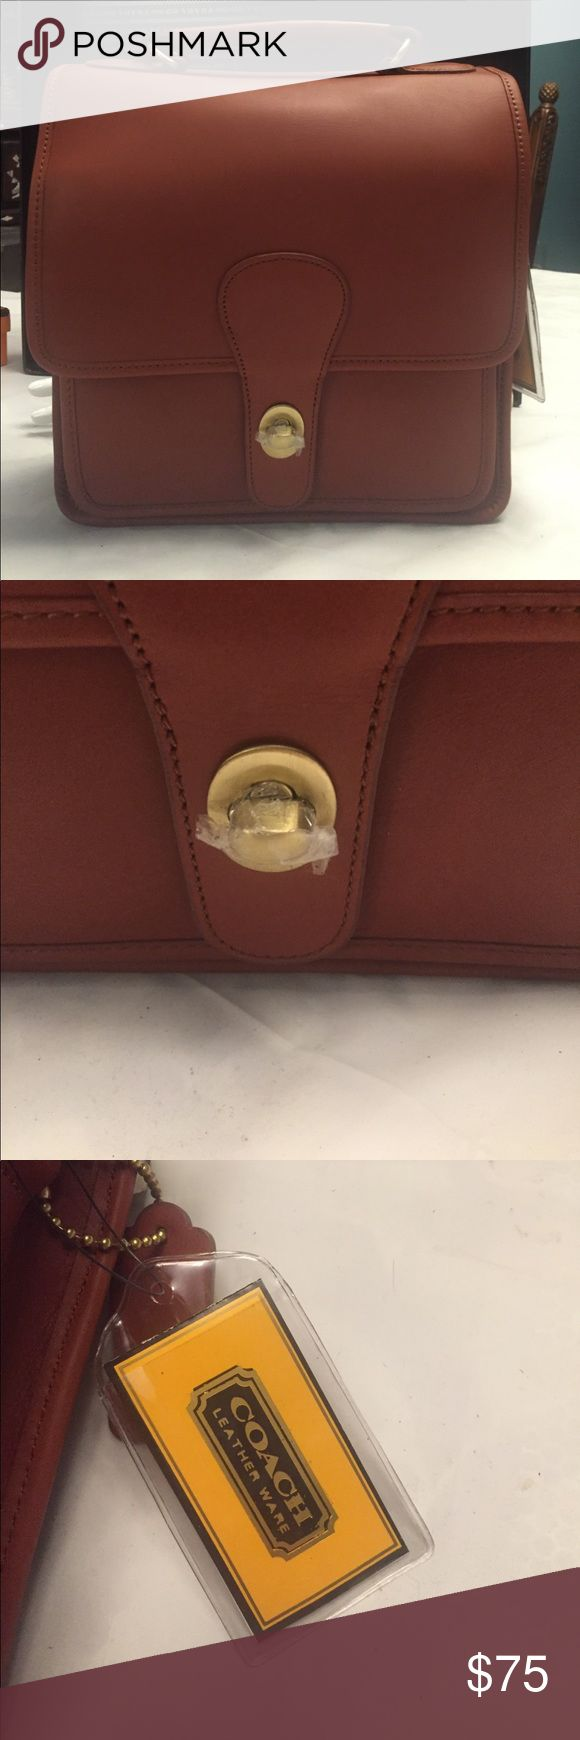 Coach Bag 💯 authentic vintage style coach leather bag , brand new , very fashionable and classic,  come with leather band And original key 🔑 holder in brown leather color, medium size bag Coach Bags